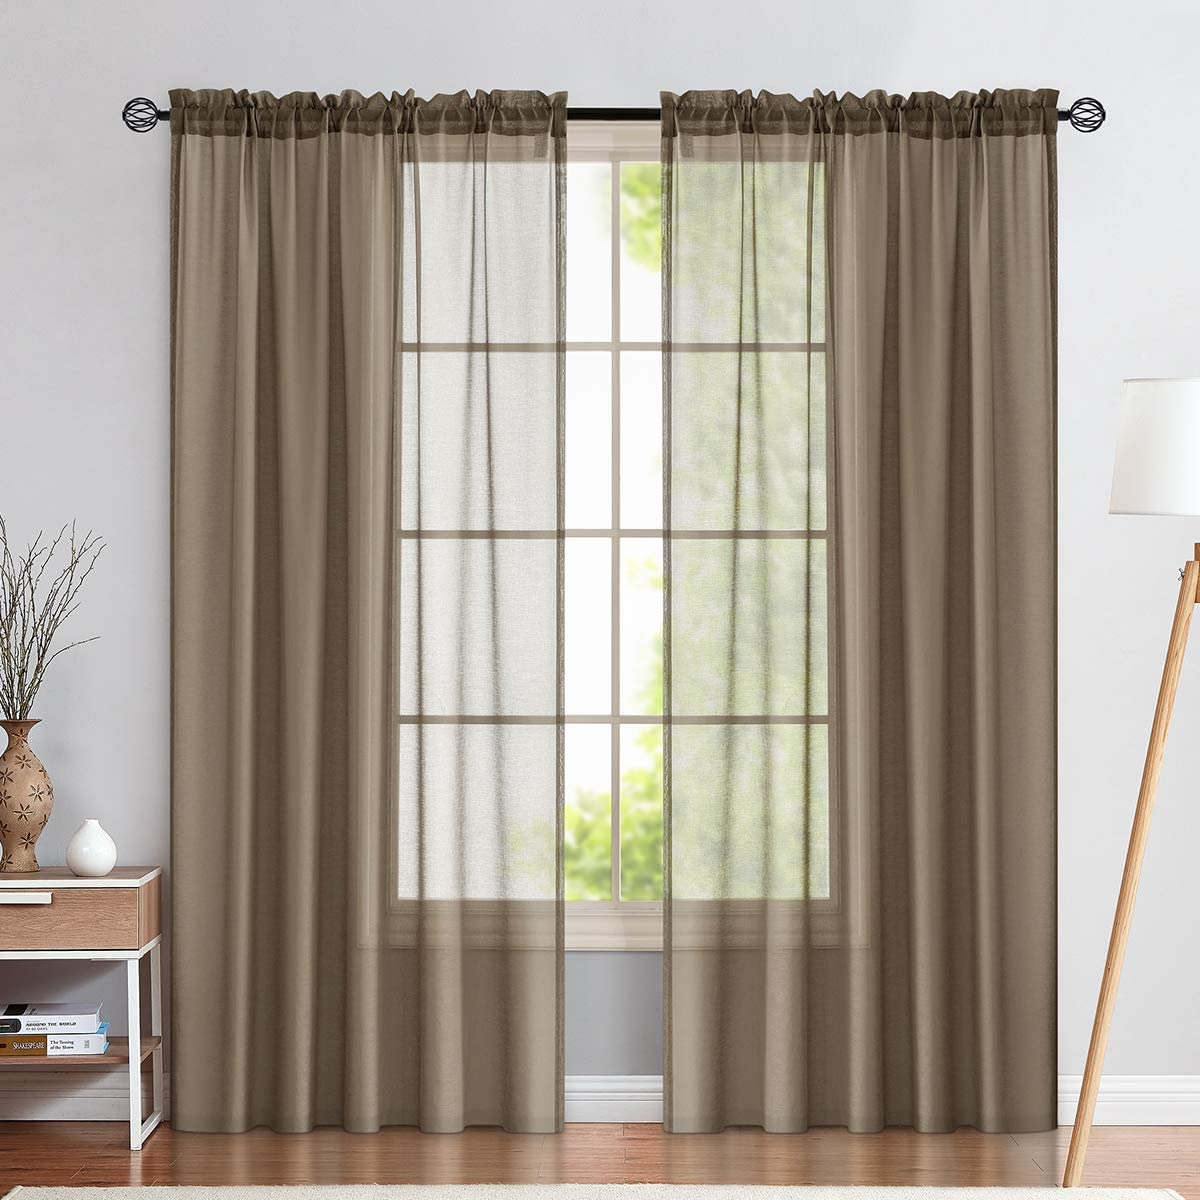 Amazon Com Sheer Curtains Brown Living Room 95 Inch Length Rod Pocket Window Curtain Panels Bedroom Semi Sheer Voile Curtains 2 Panels Taupe Khaki Kitchen Dining